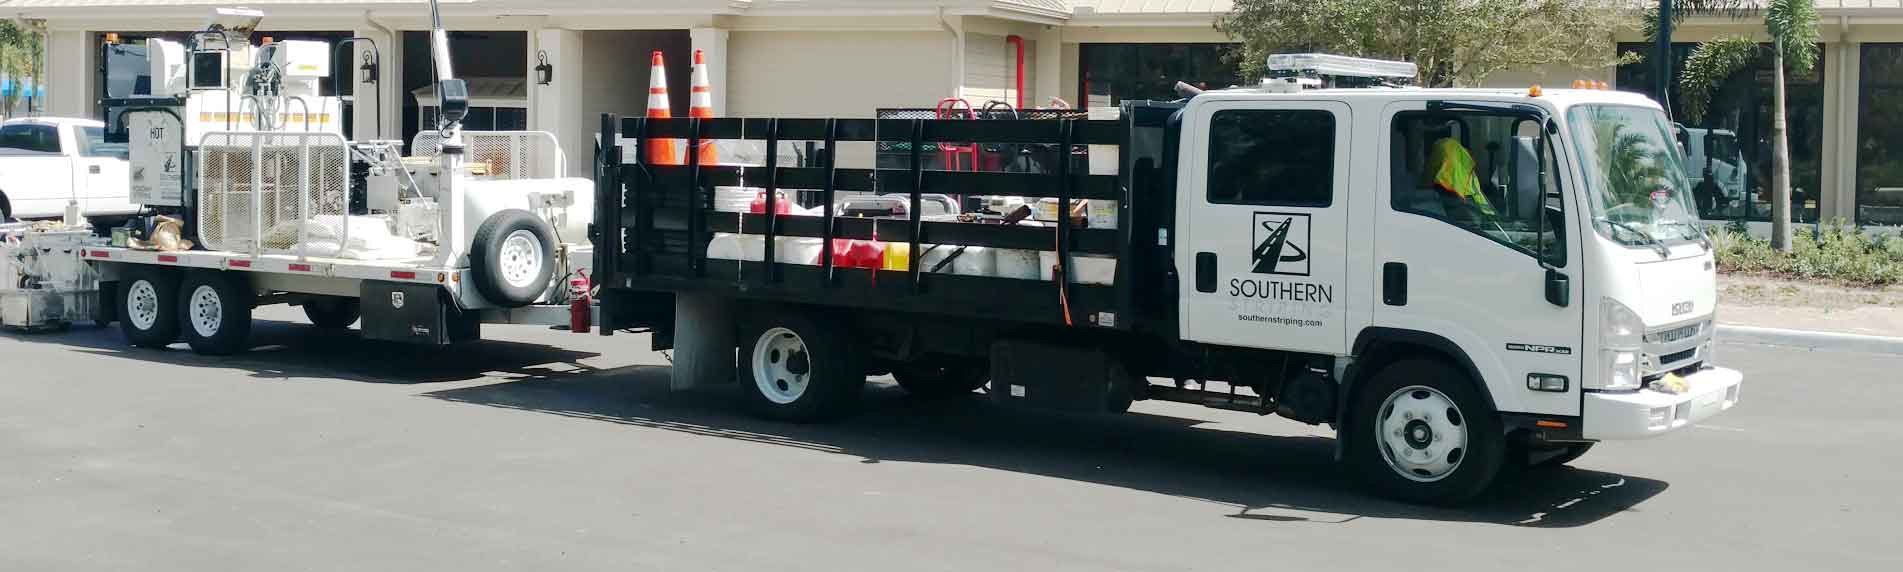 Southern Striping striping, sealcoating and asphalt repair service truck - Southern Striping, LLC